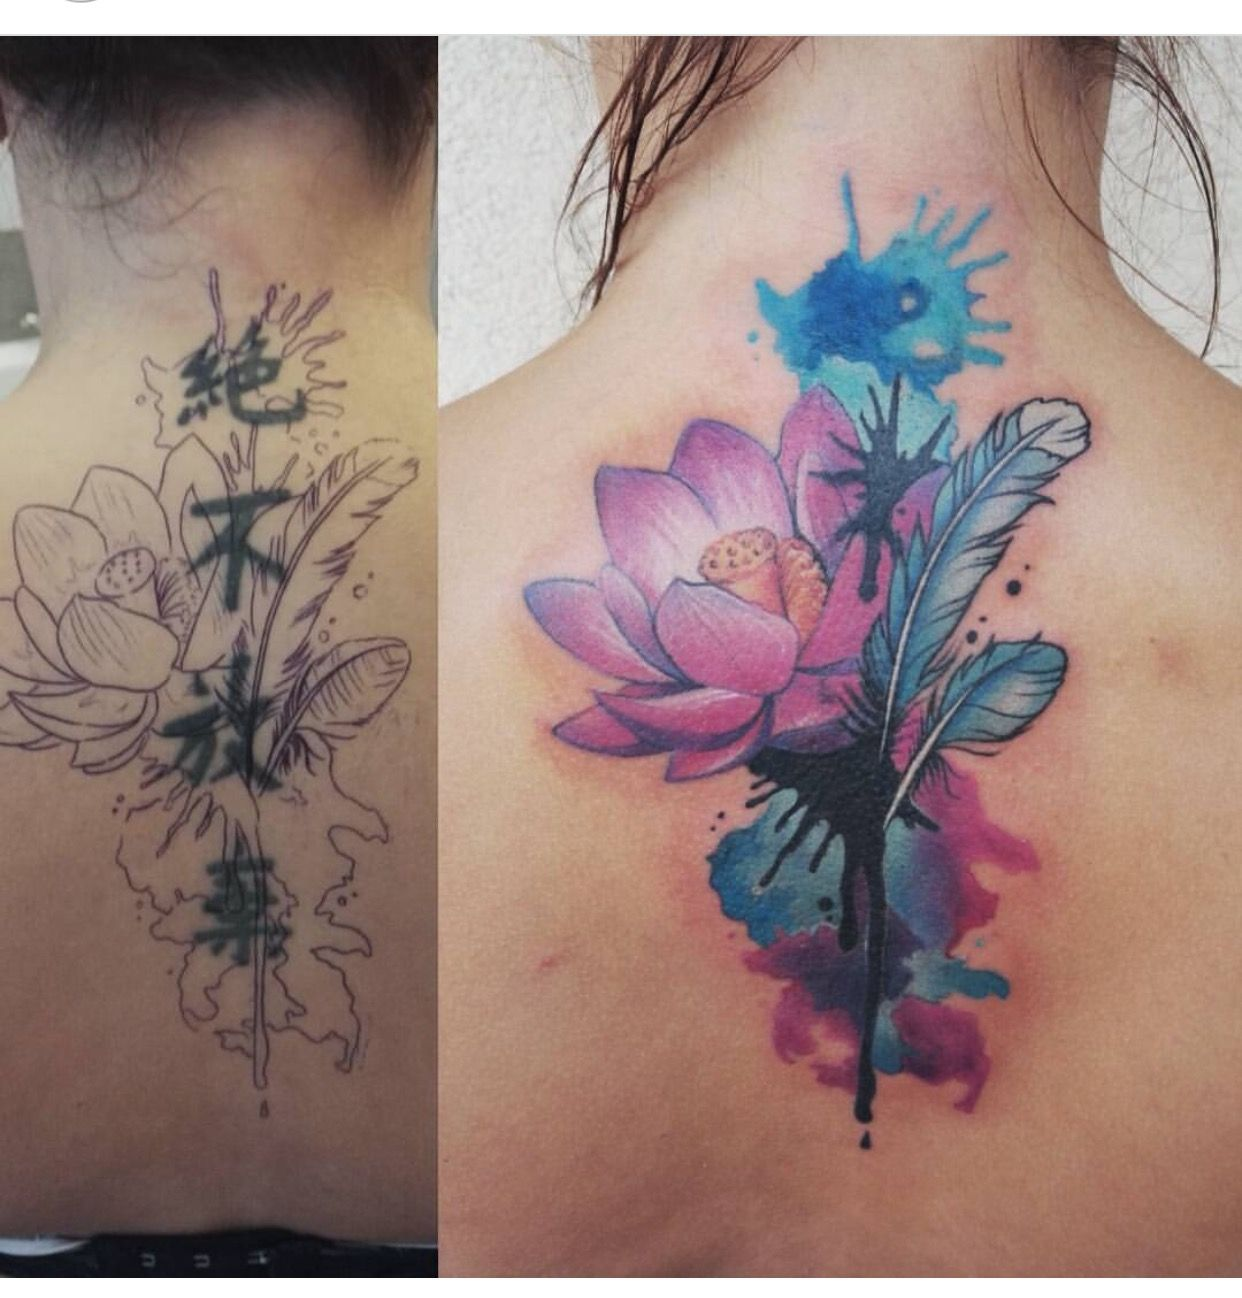 Tramp stamp cover up tattoo ideas pin by camila sofia on tatuajes  pinterest  tattoos cover